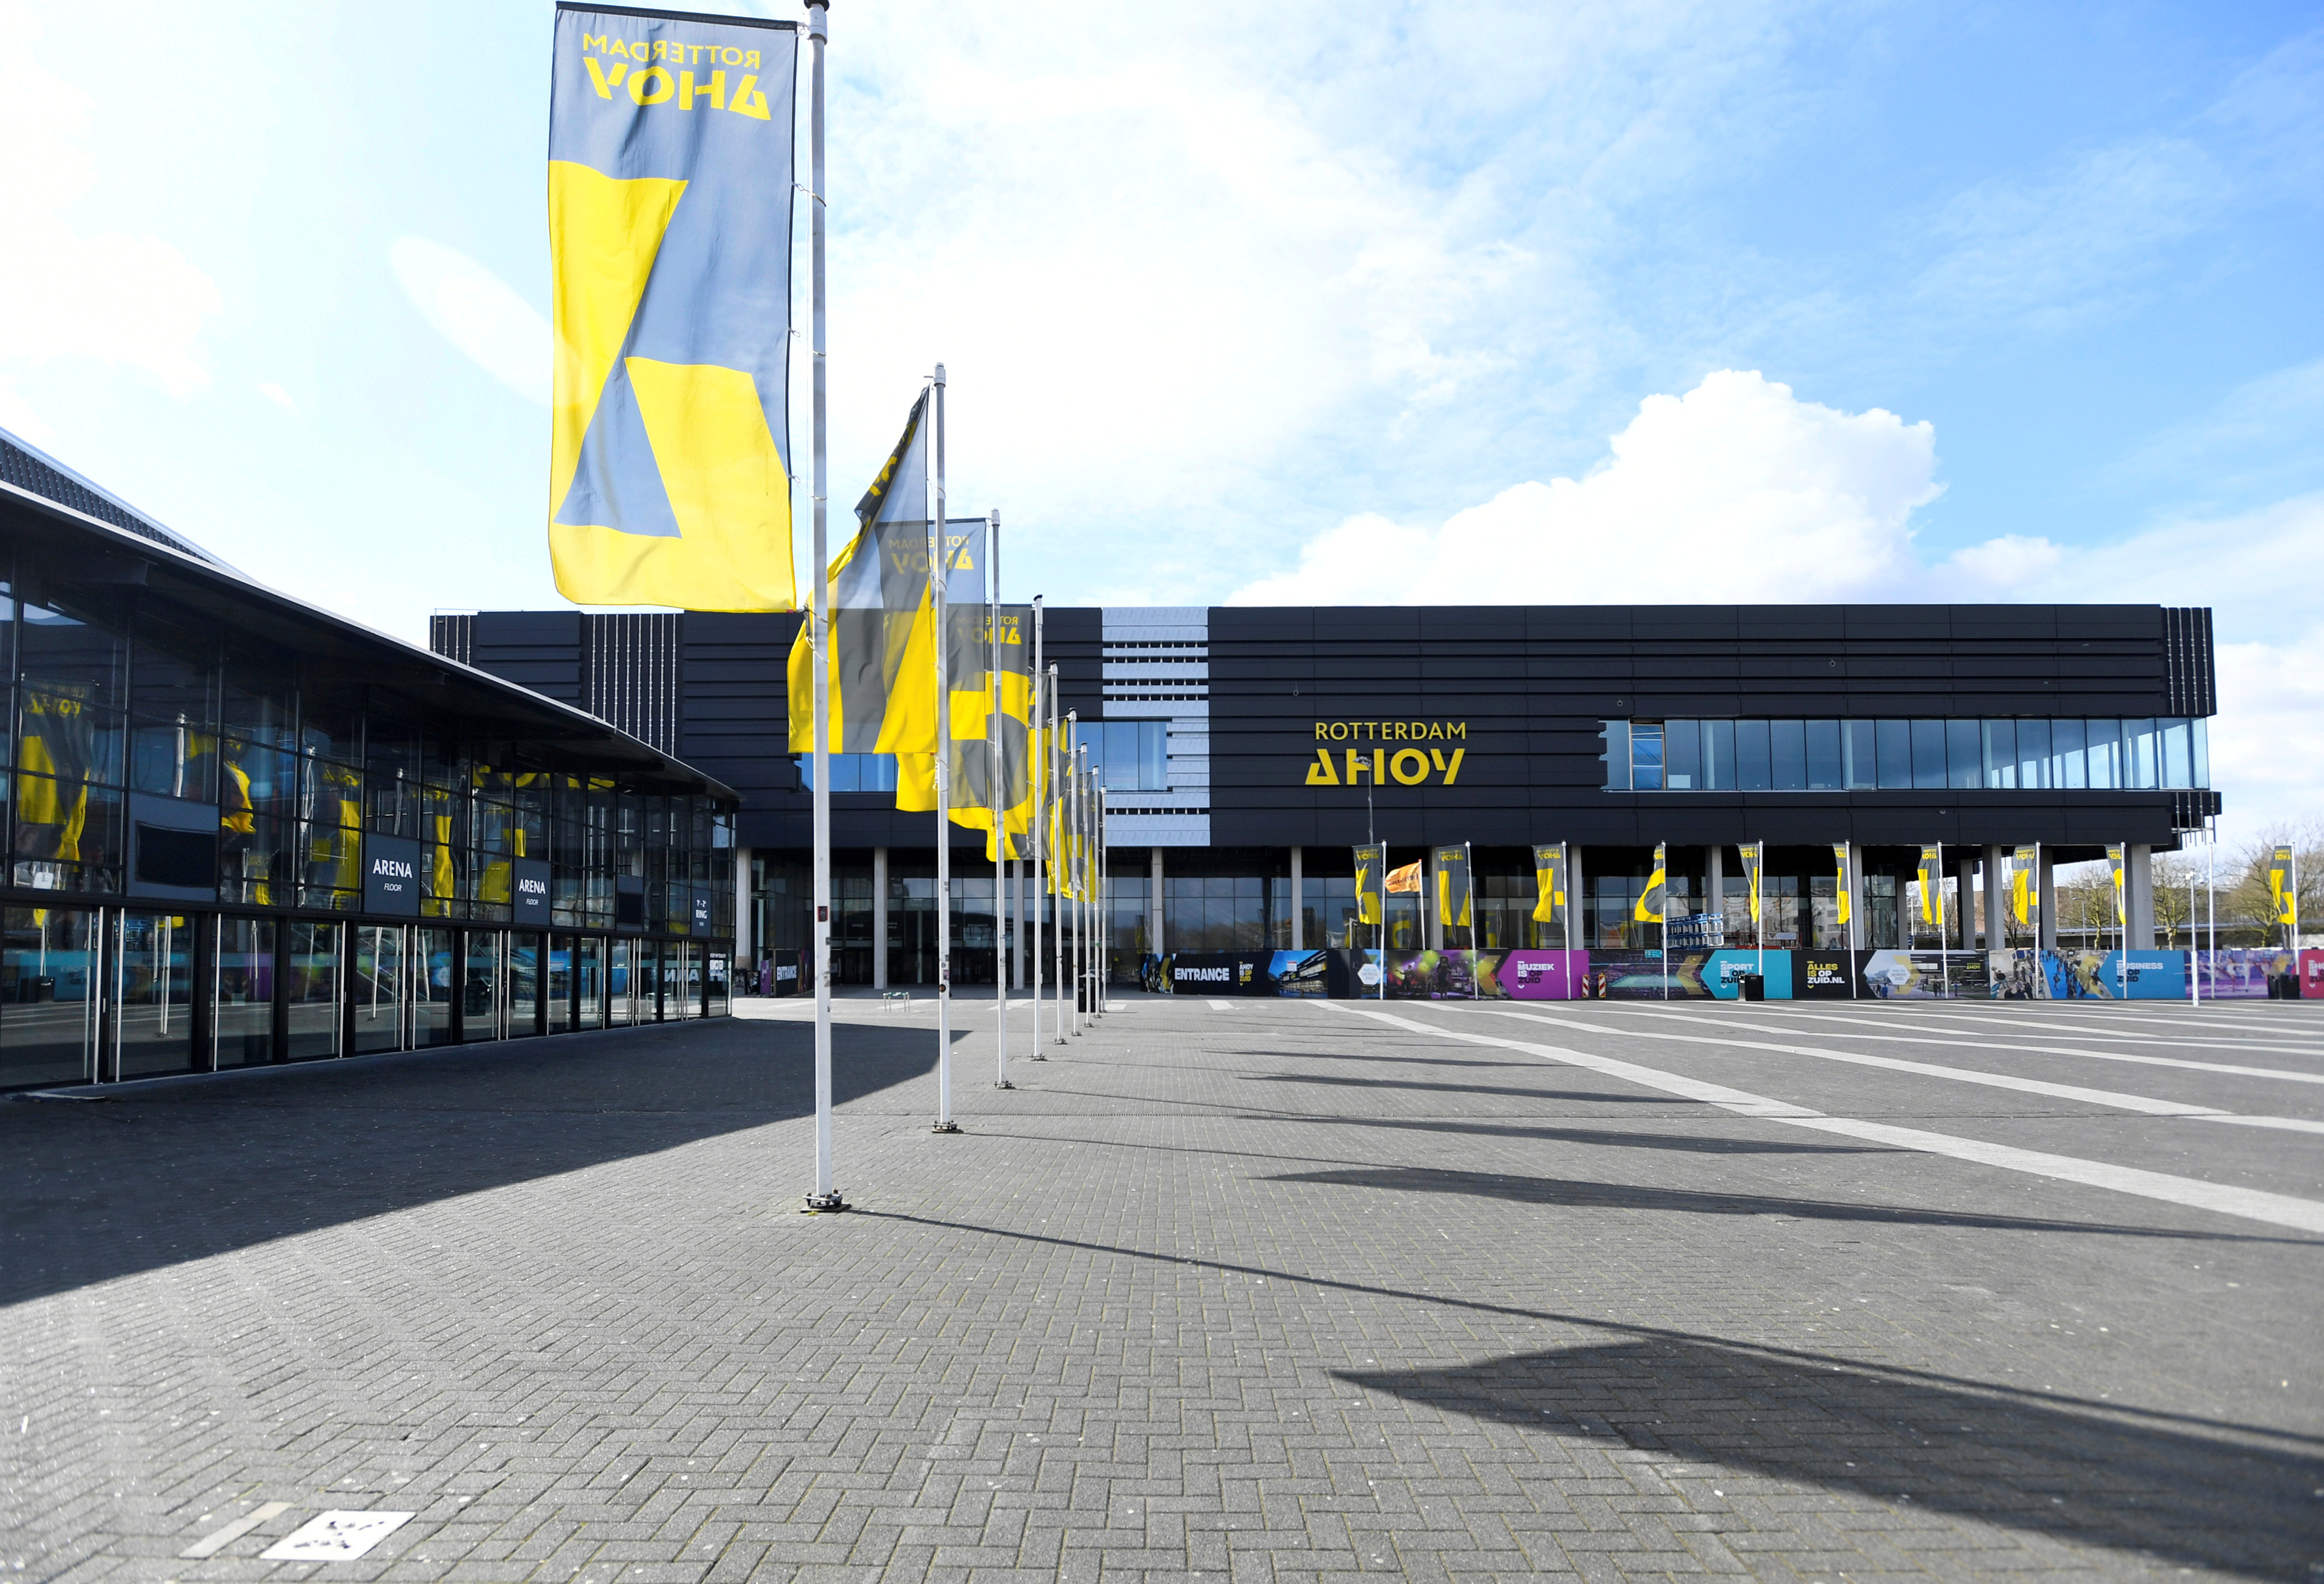 General view of the Ahoy arena in Rotterdam, Netherlands that will host the Eurovision Song Contest  in May. REUTERS/Piroschka Van De Wouw